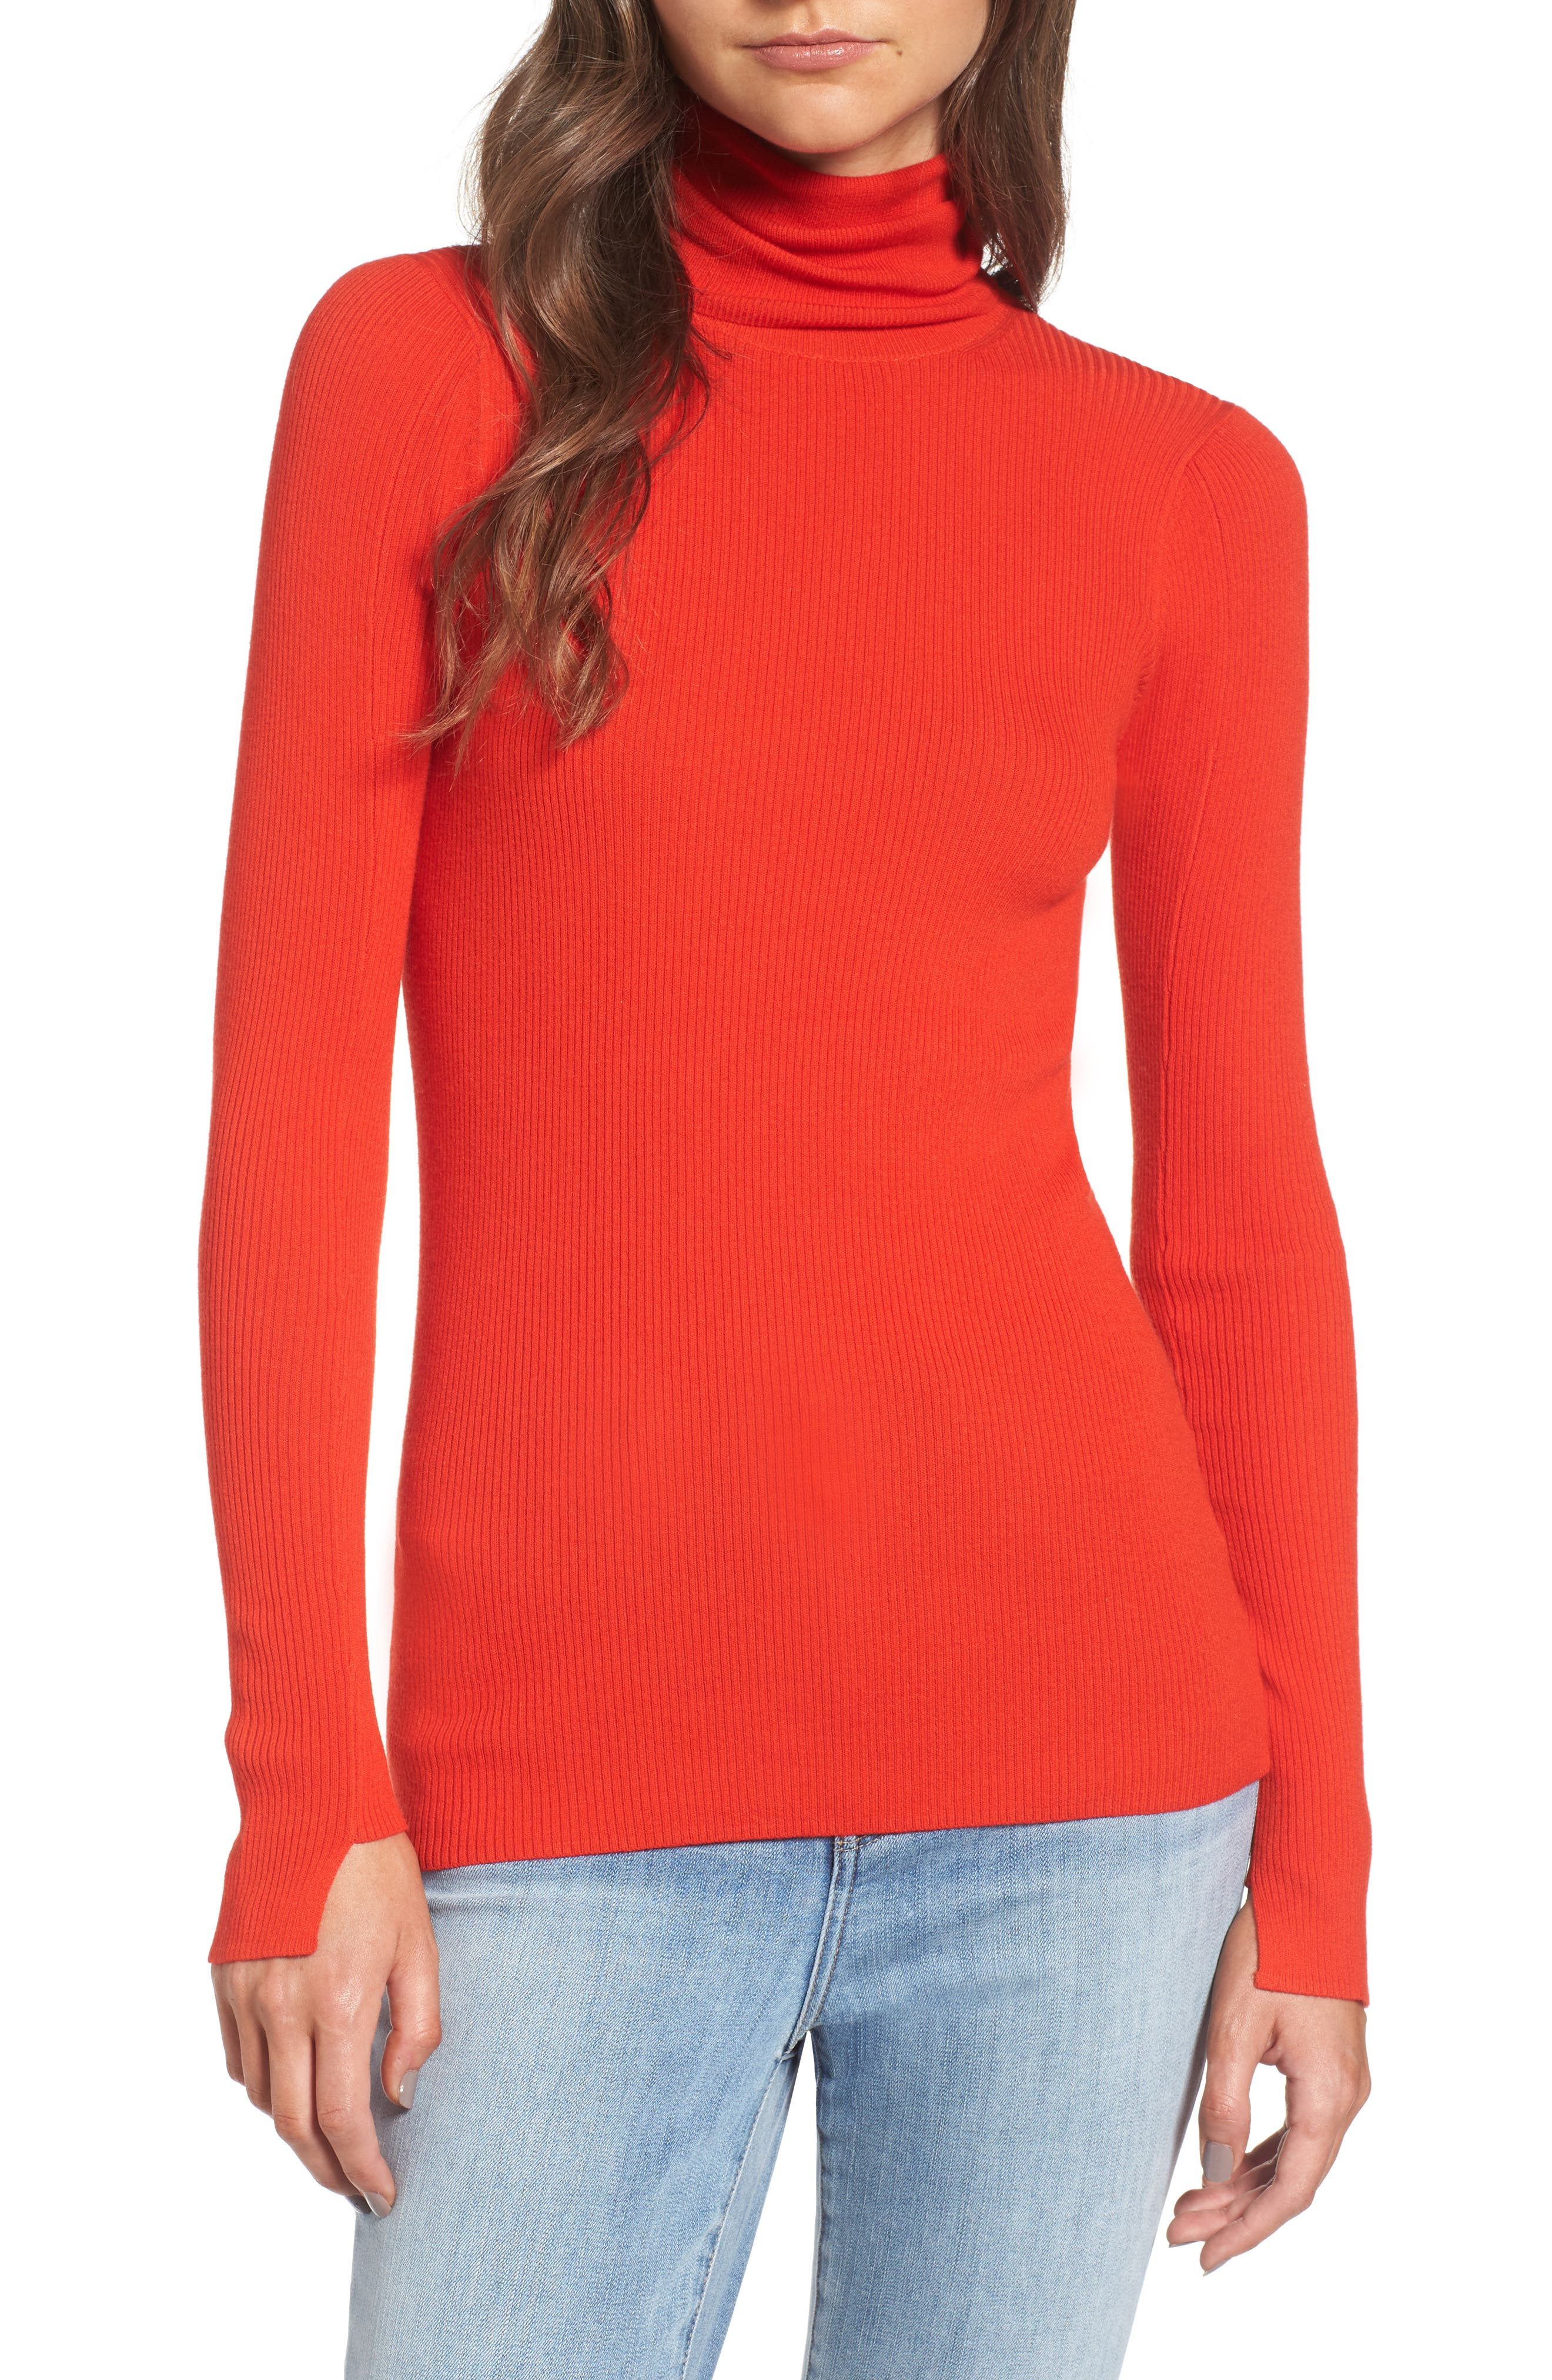 x Something Navy Turtleneck Sweater,                             Main thumbnail 1, color,                             Red Fiery